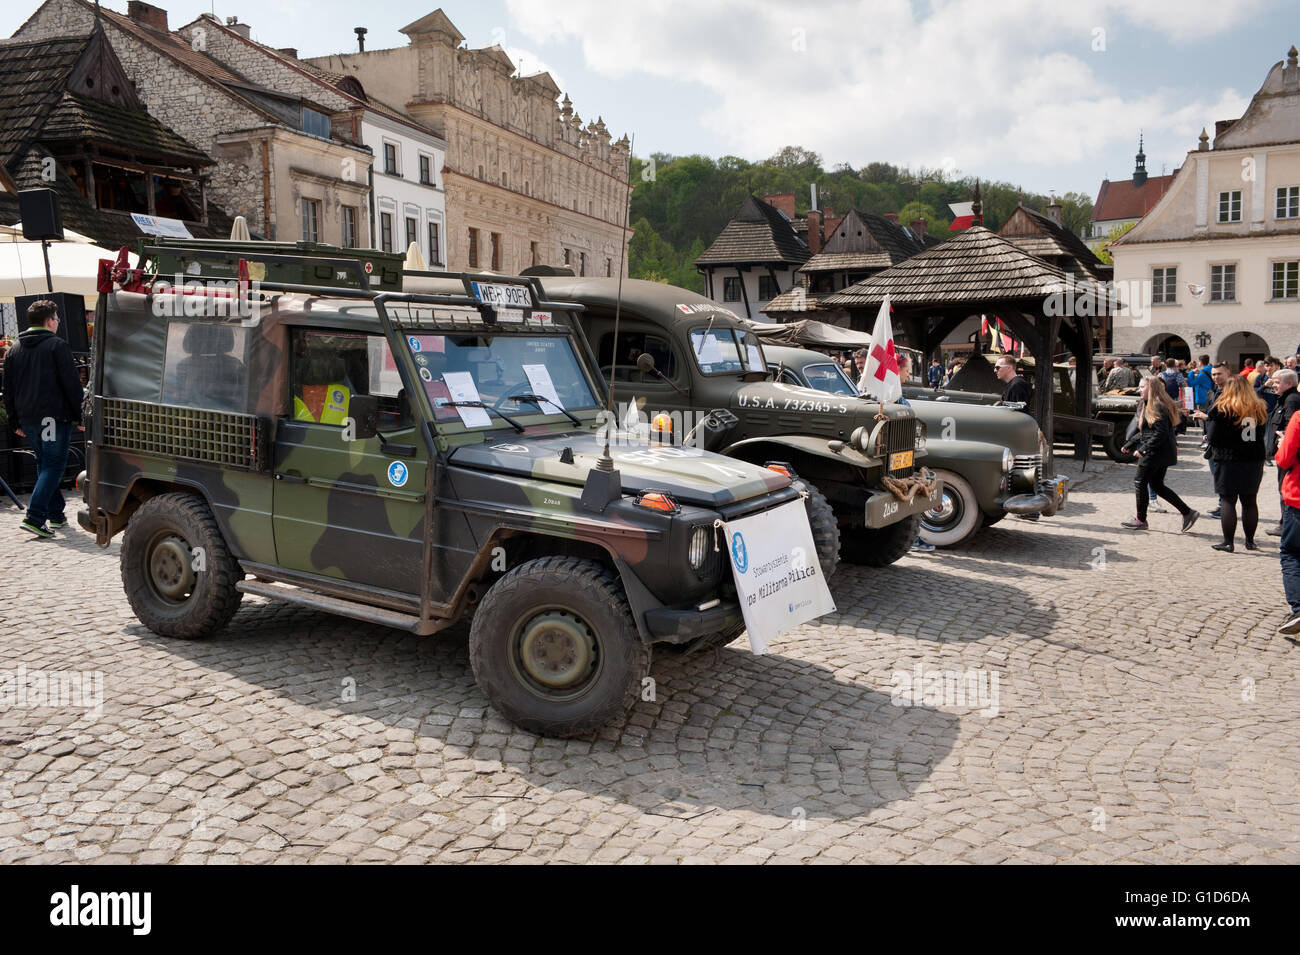 Willys show at Rally VI military vehicles from World War II in Kazimierz Dolny, antique army cars event at the Market - Stock Image